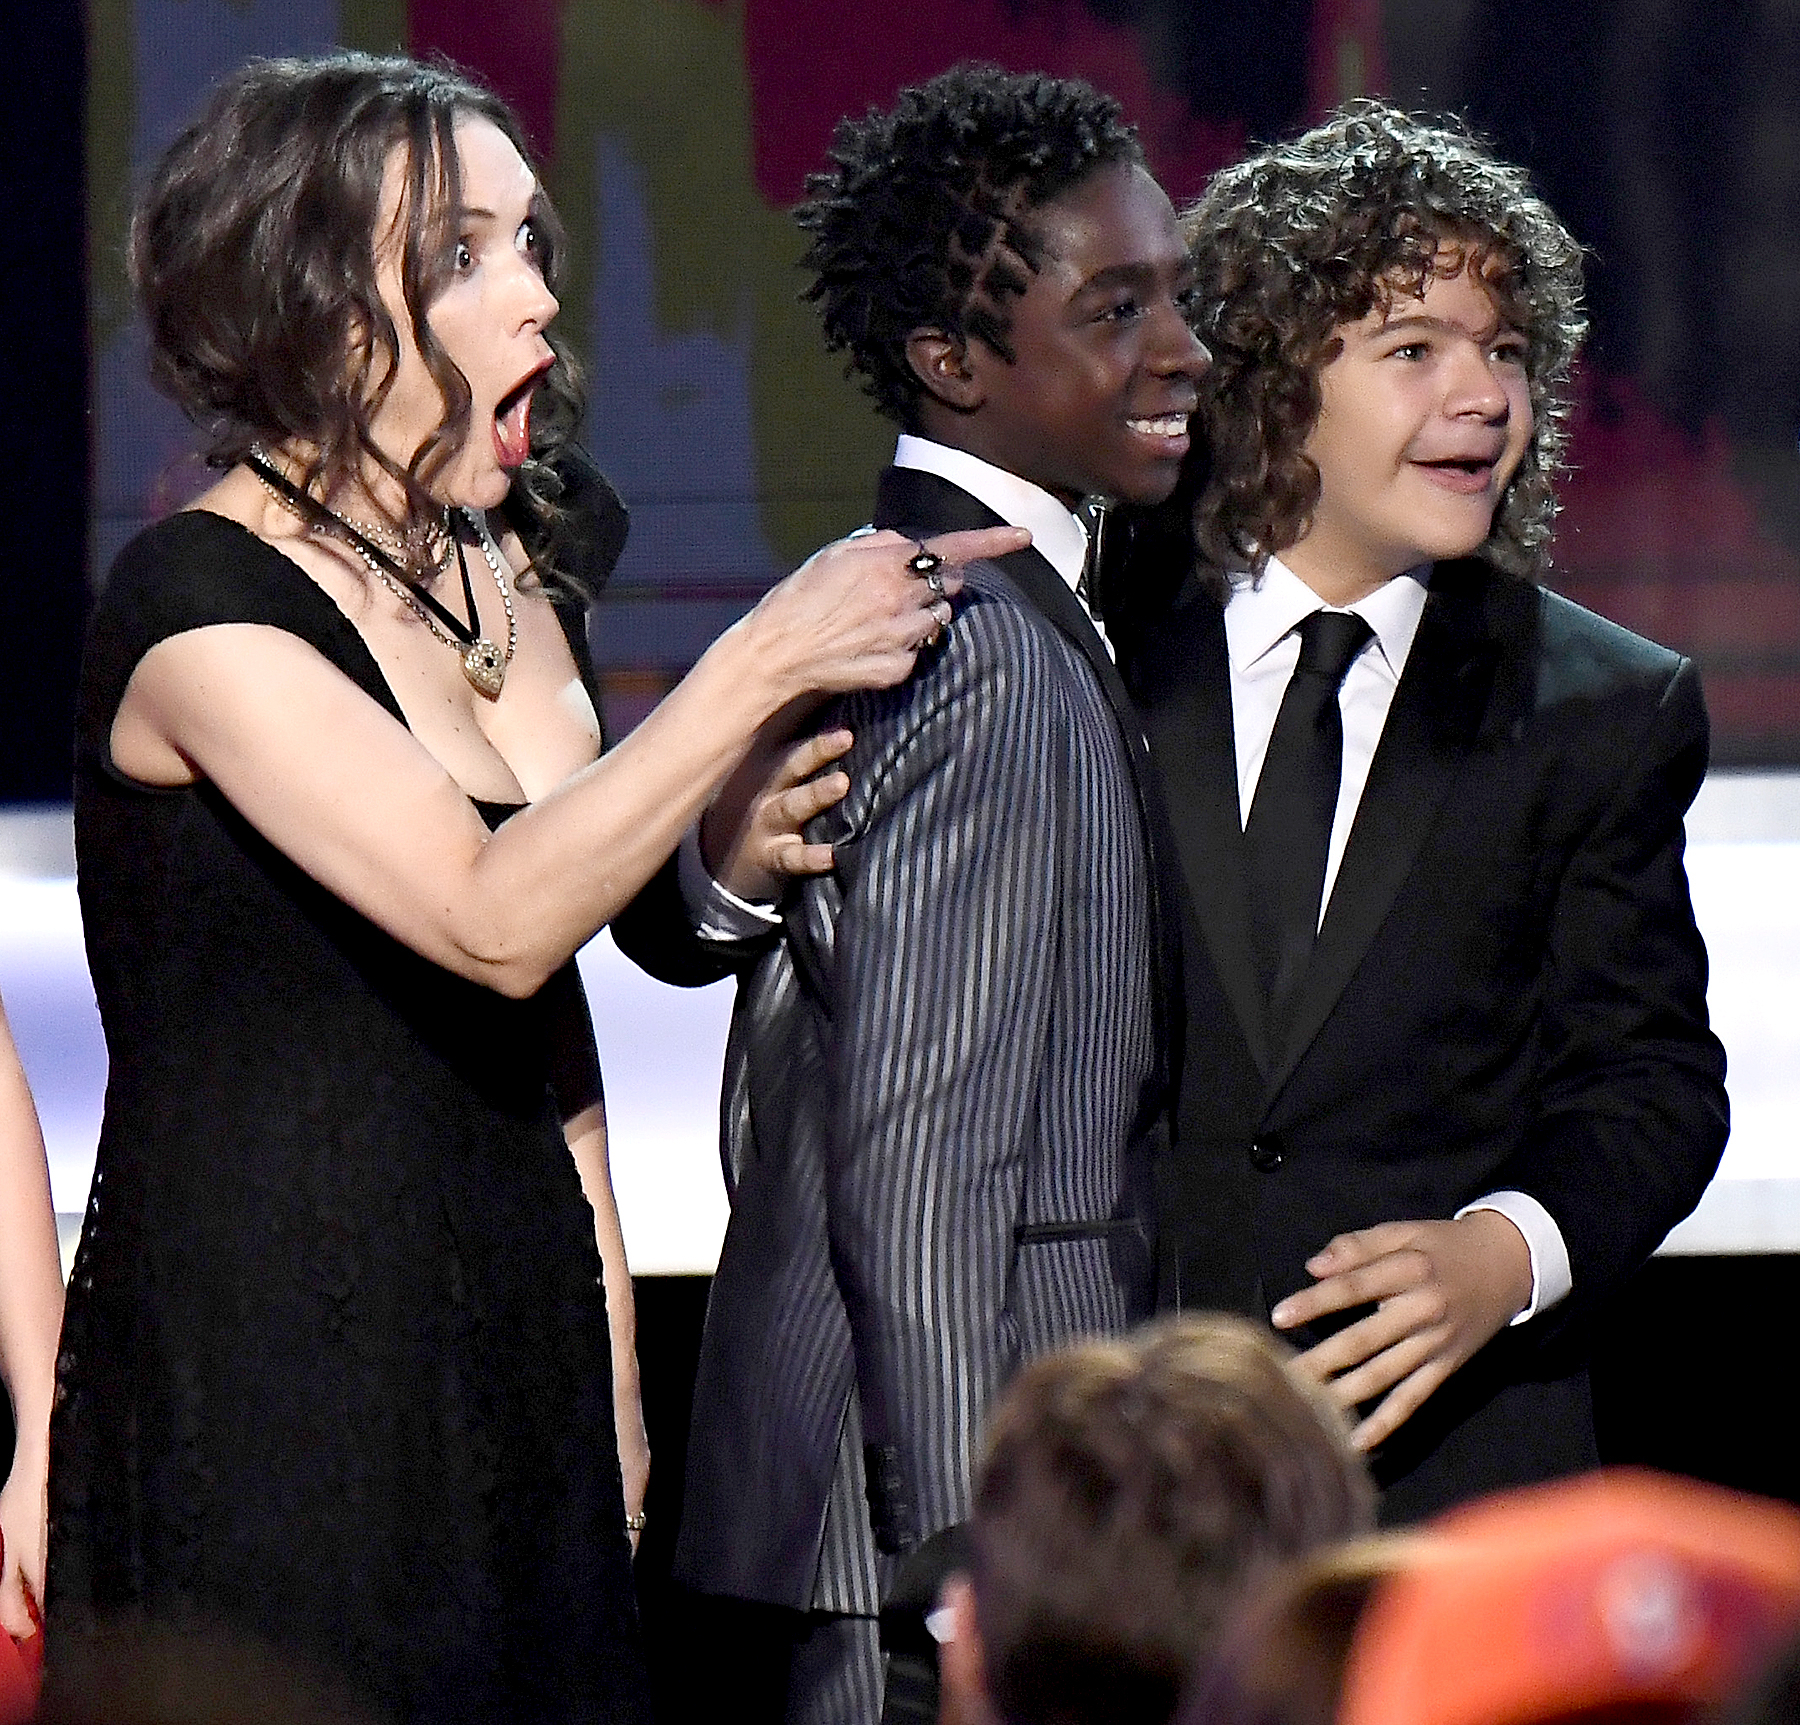 The cast of 'Stranger Things' accepts the award for Best Performance by an Ensemble in a Drama Series on stage during the 23rd Annual Screen Actors Guild Awards at the Shrine Expo Hall on Jan. 29, 2017, in Los Angeles.